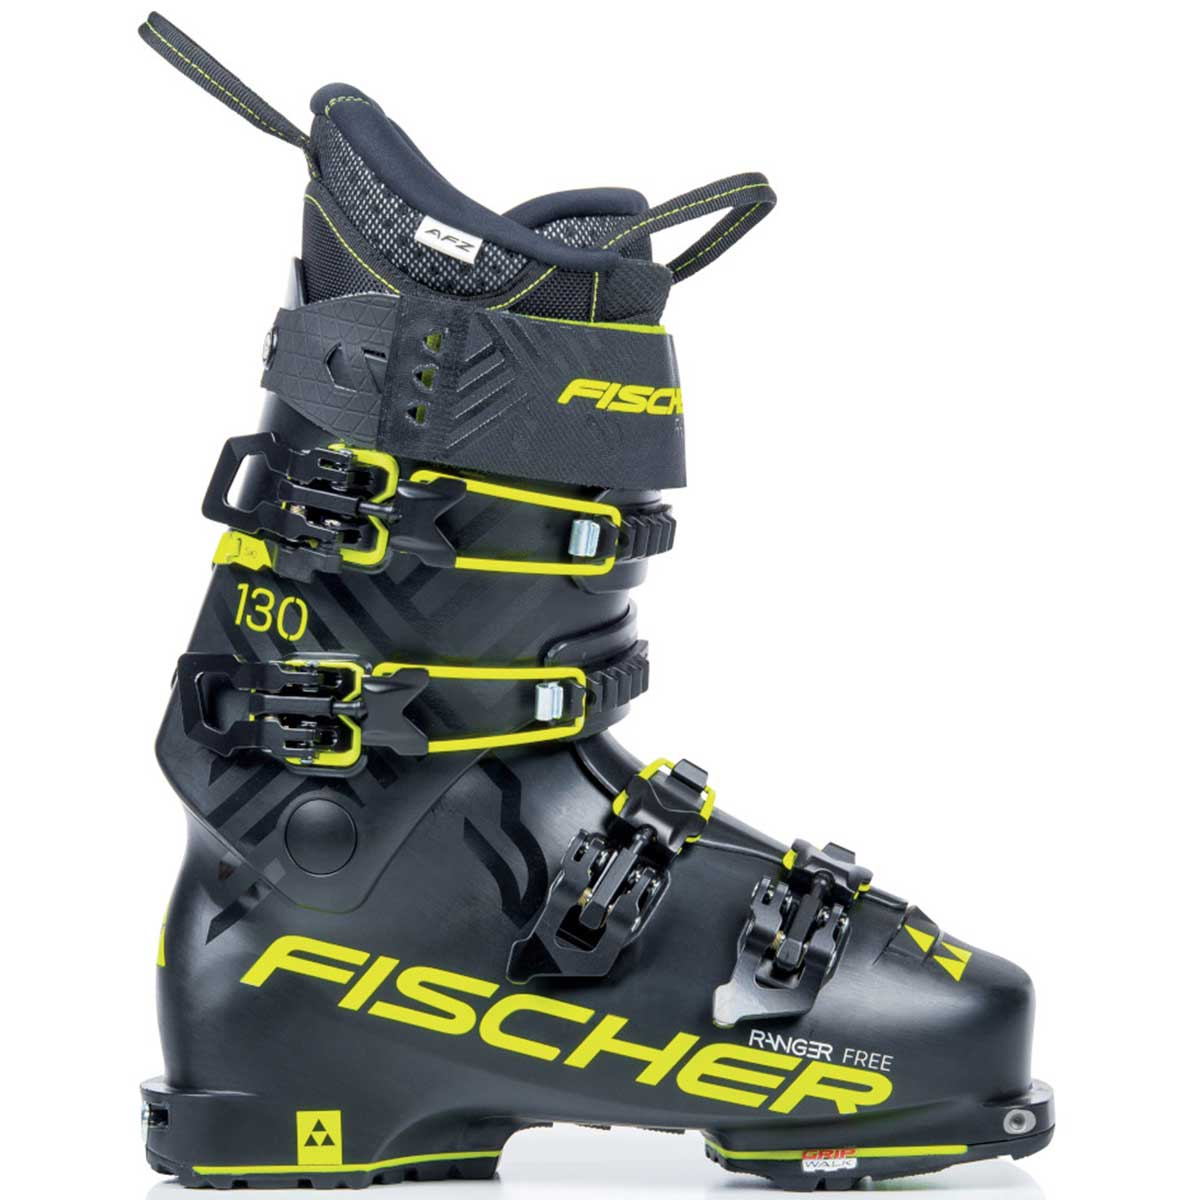 Fischer Ranger Free 130 ski boot in black and yellow